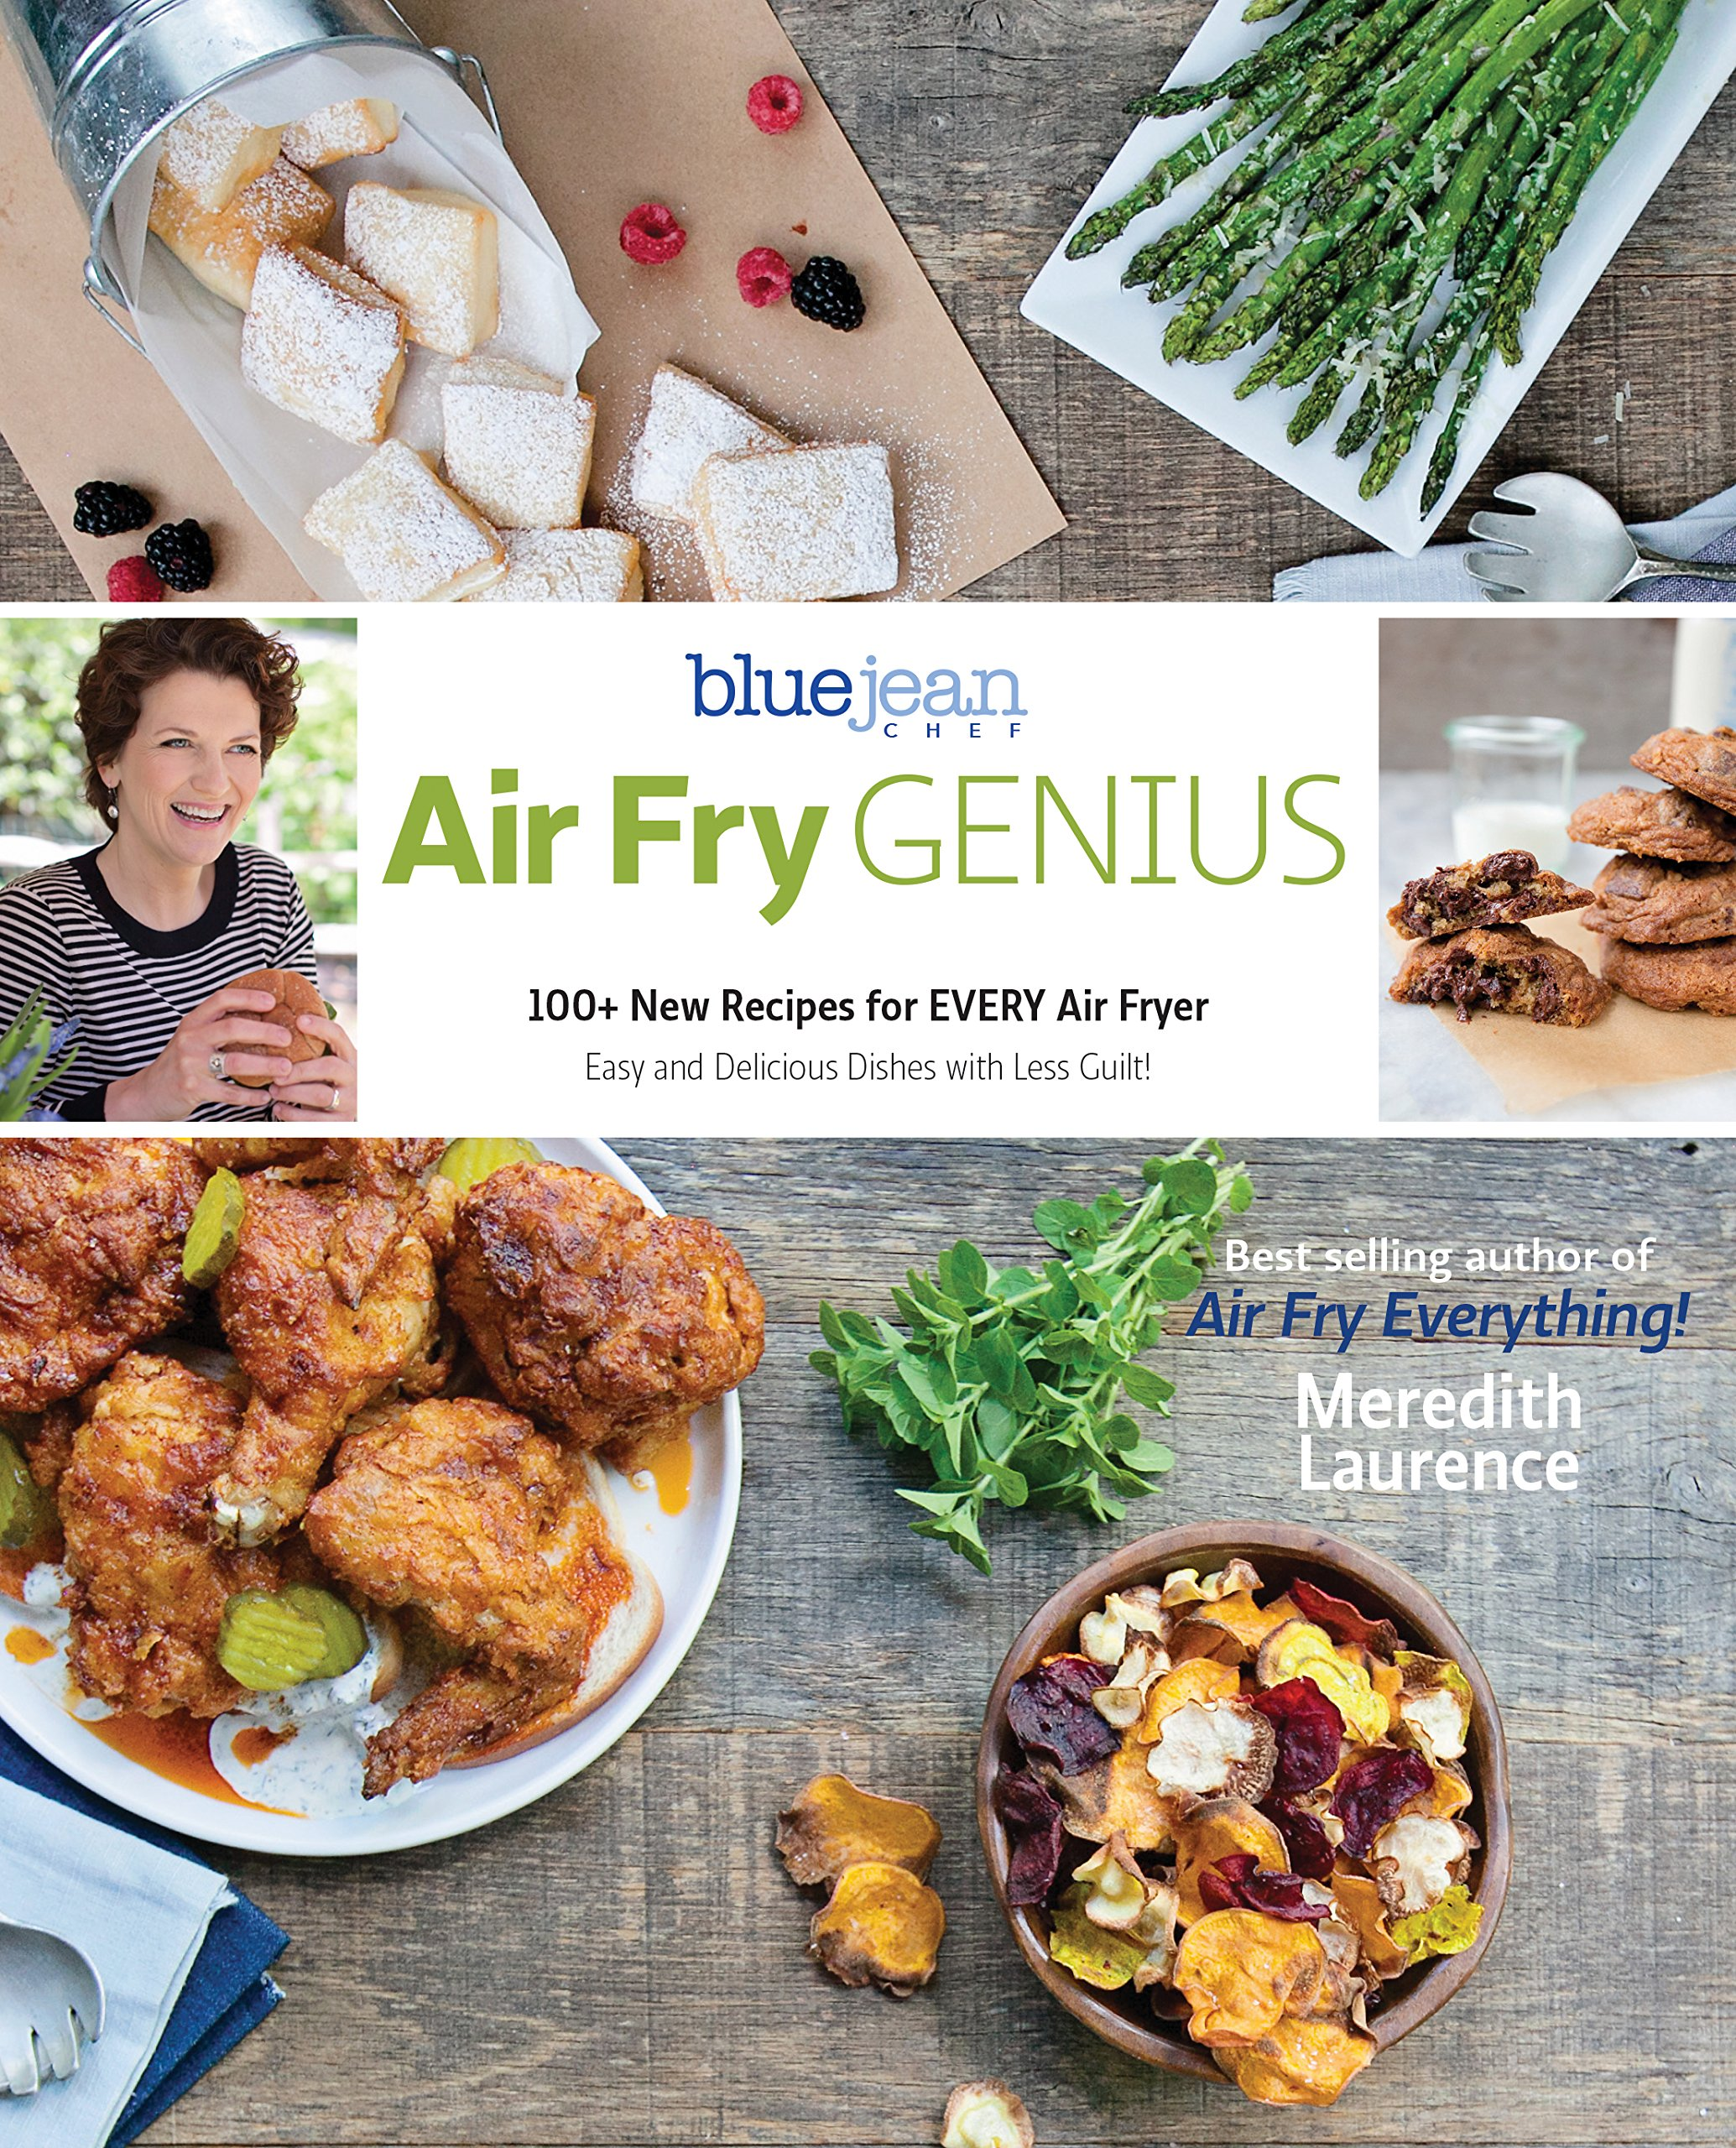 Air Fry Genius: 100+ New Recipes for EVERY Air Fryer (The Blue Jean Chef): Meredith  Laurence: 9780982754061: Amazon.com: Books